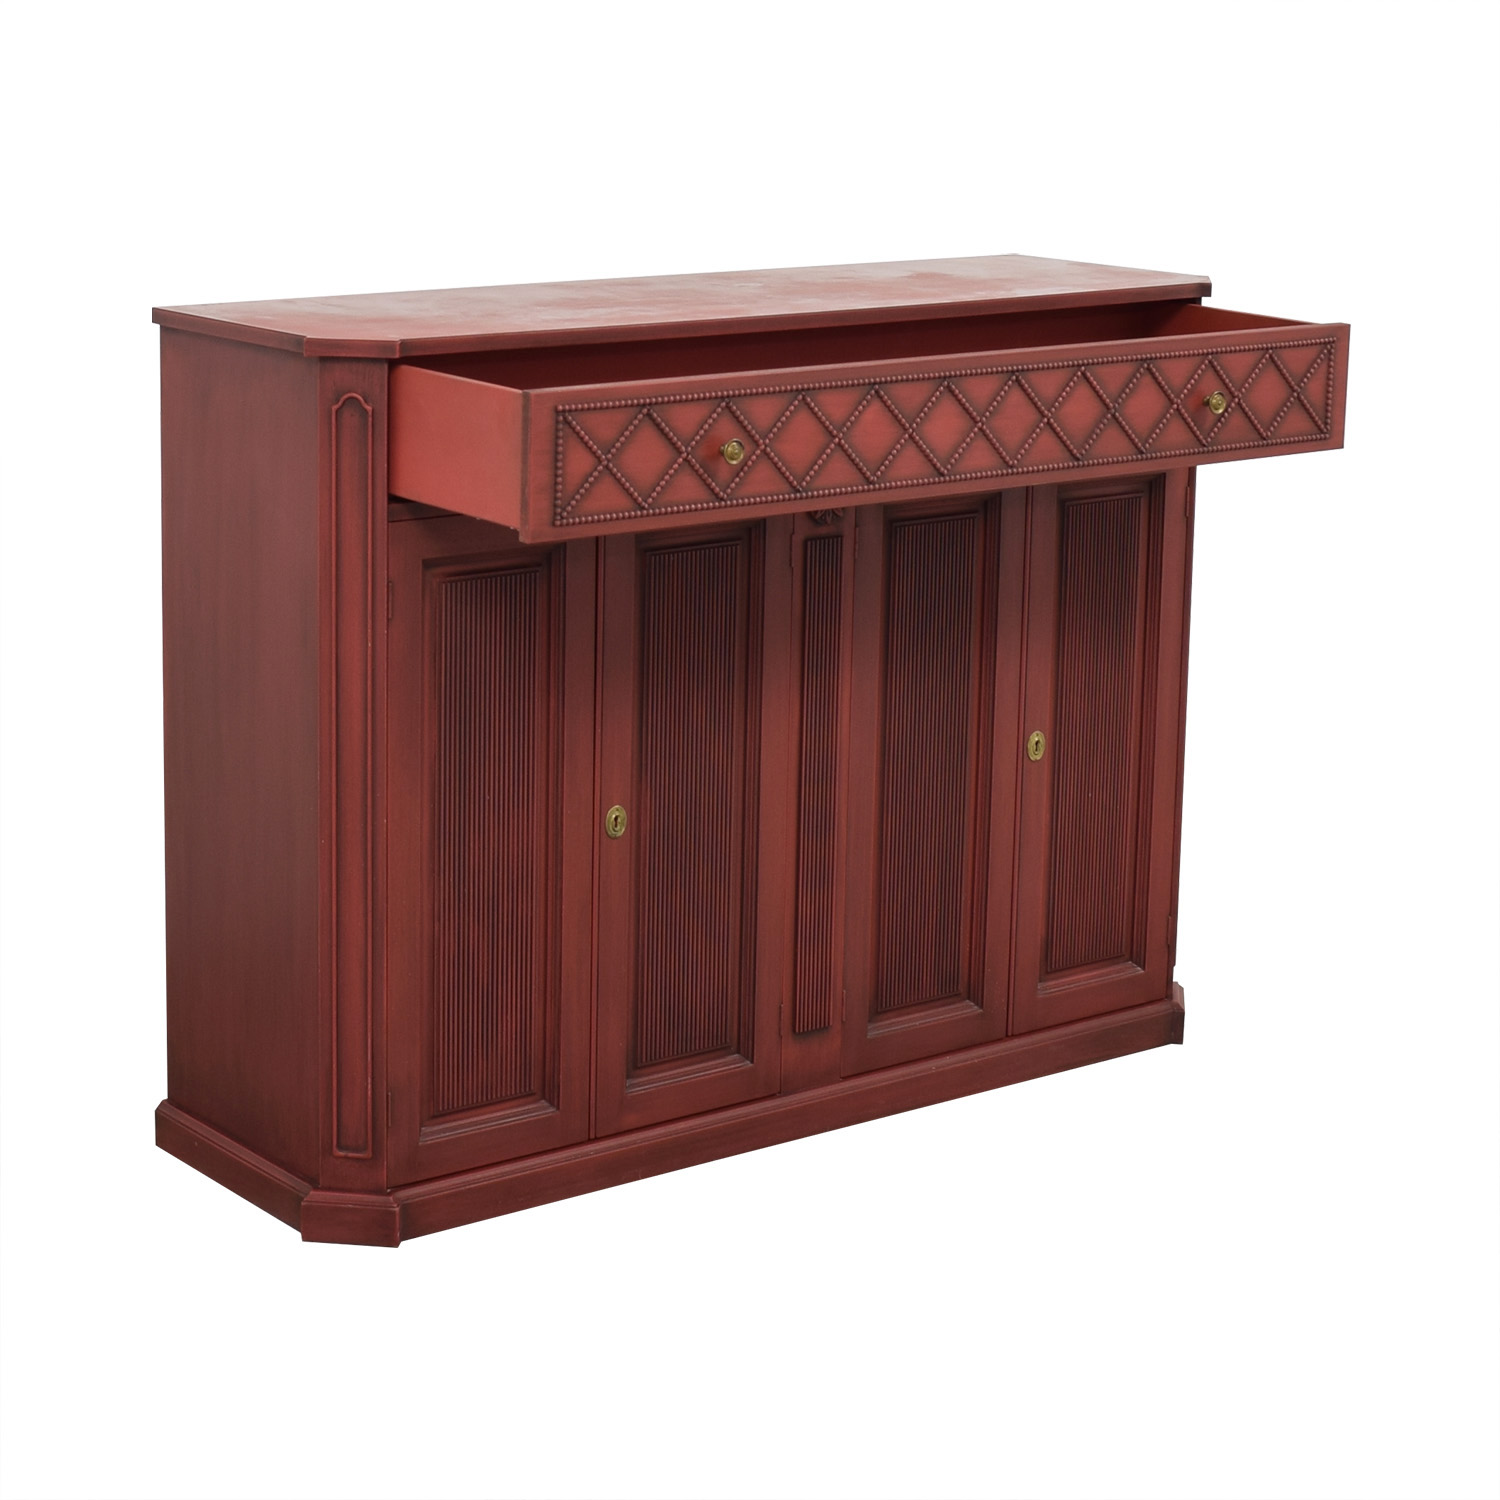 Domain Home Domain Home Buffet Cabinet for sale